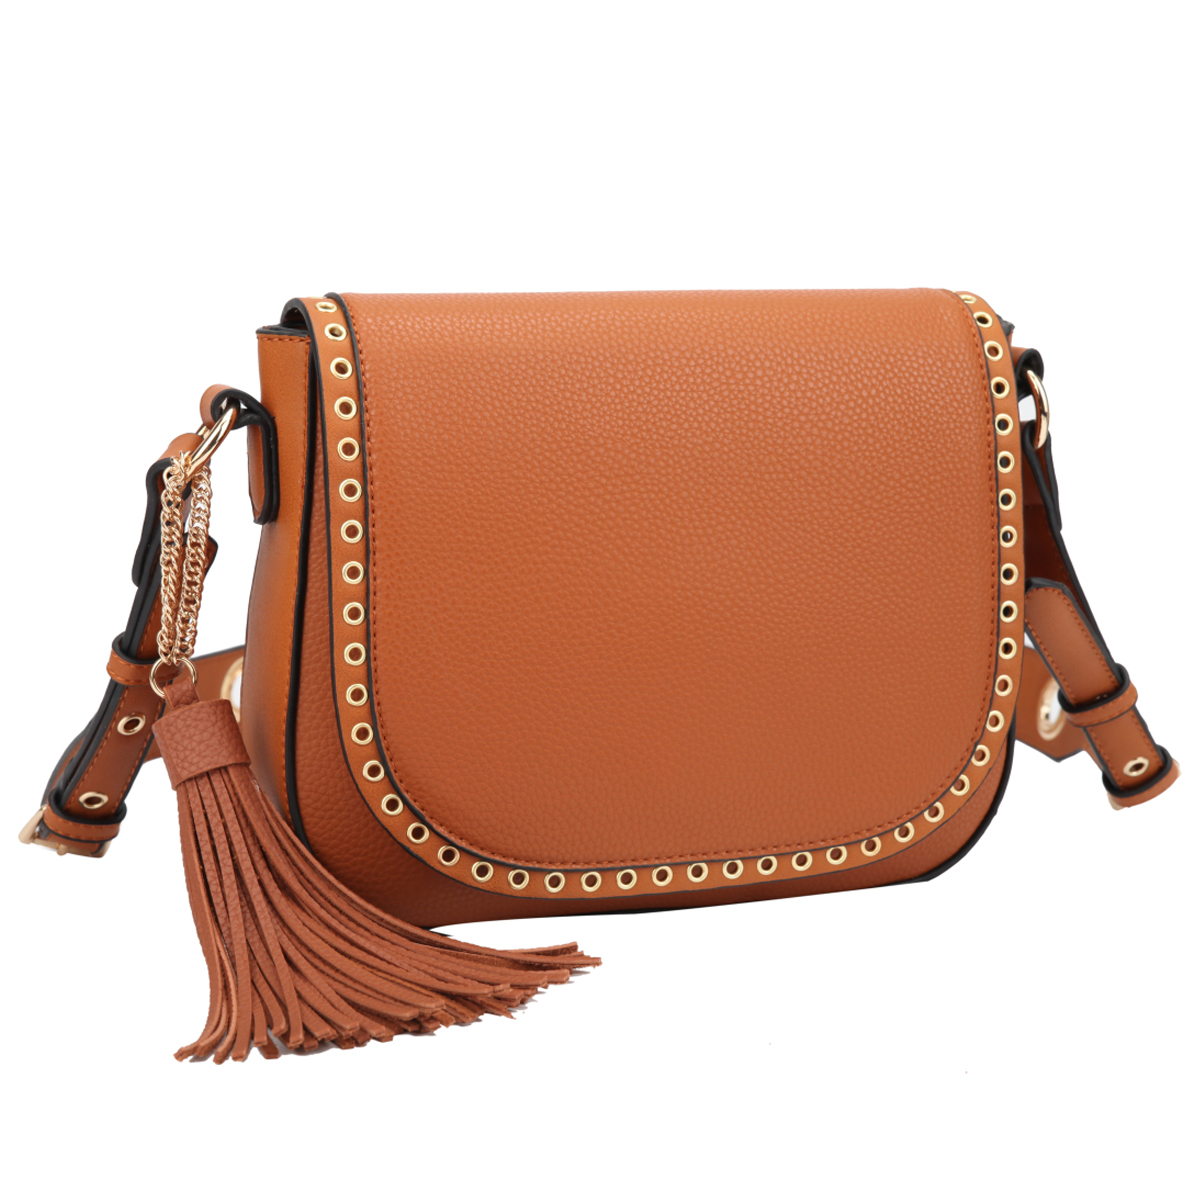 Front Flap Snap Closure Messenger Bag with Decorative Tassel and Grommet Design